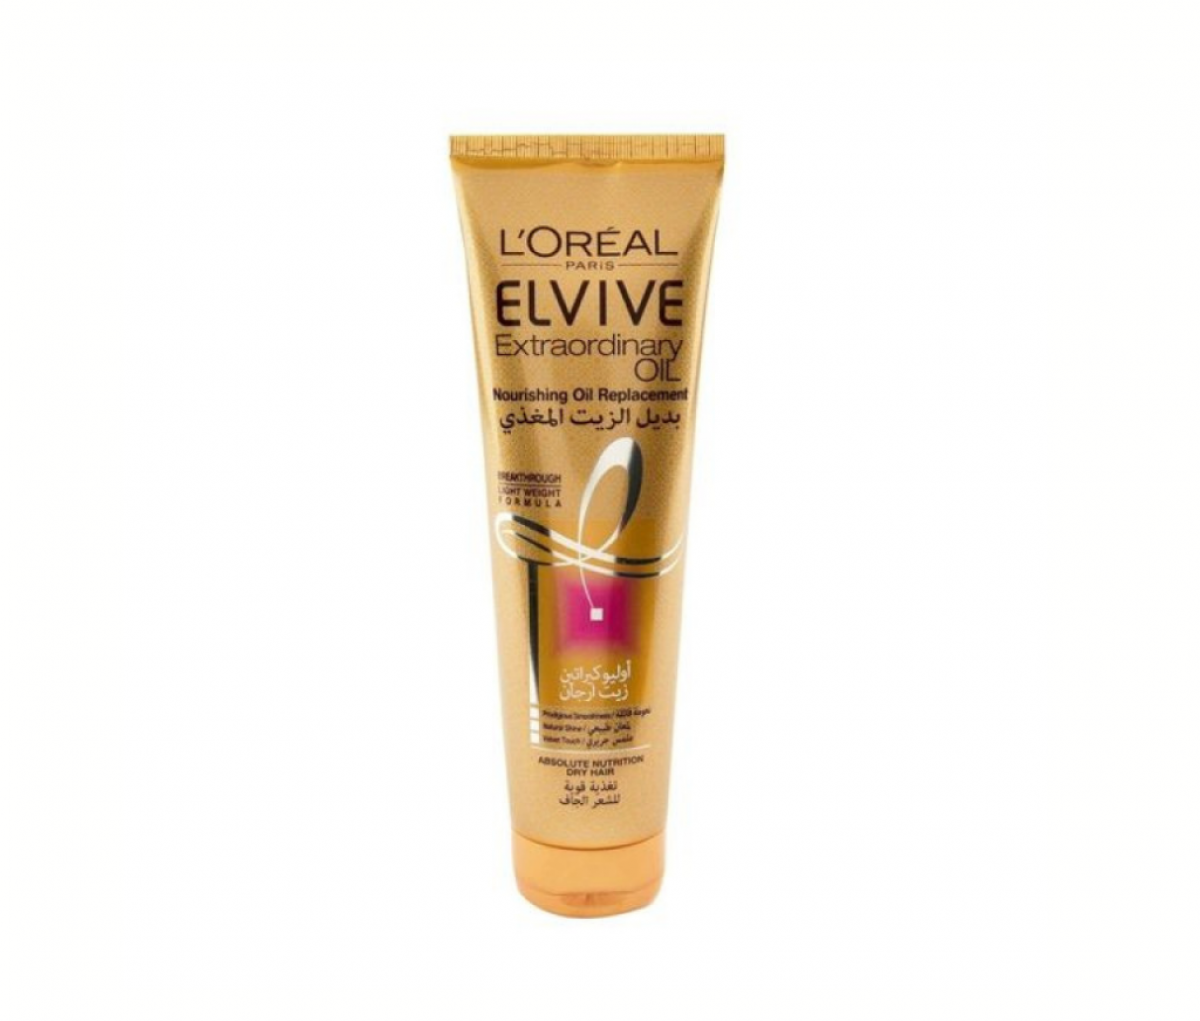 L'Oreal  Elvive Extraordinary Oil Replacement